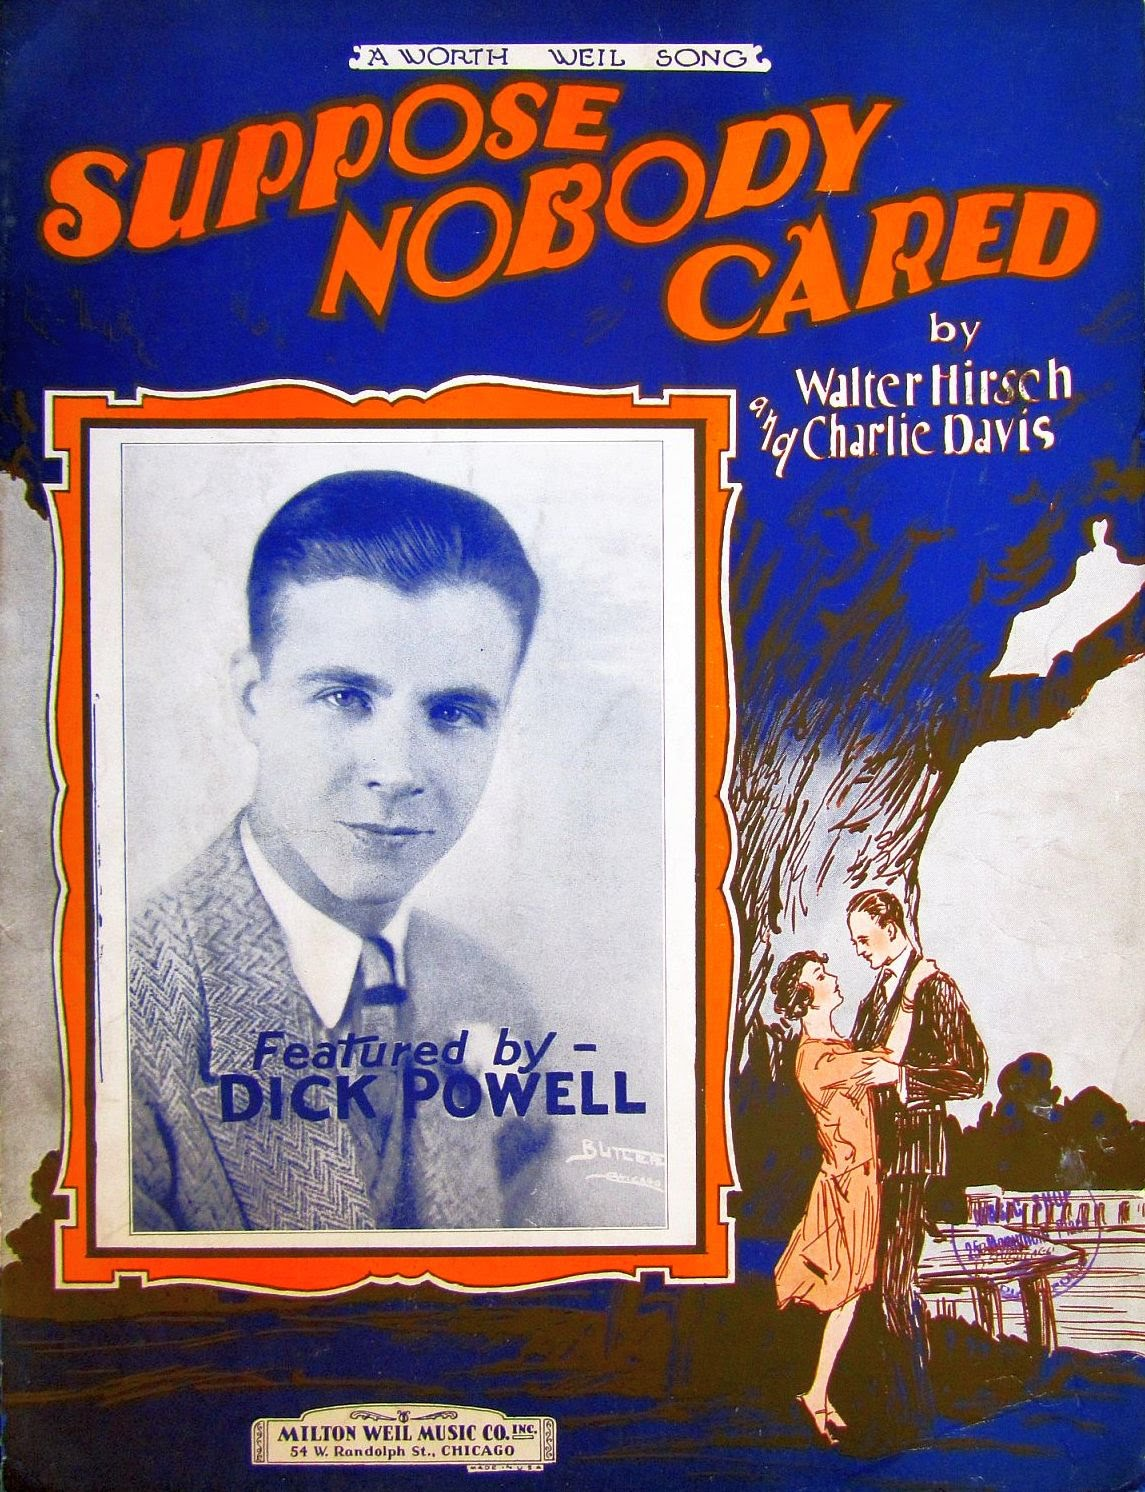 Dick powell blues band